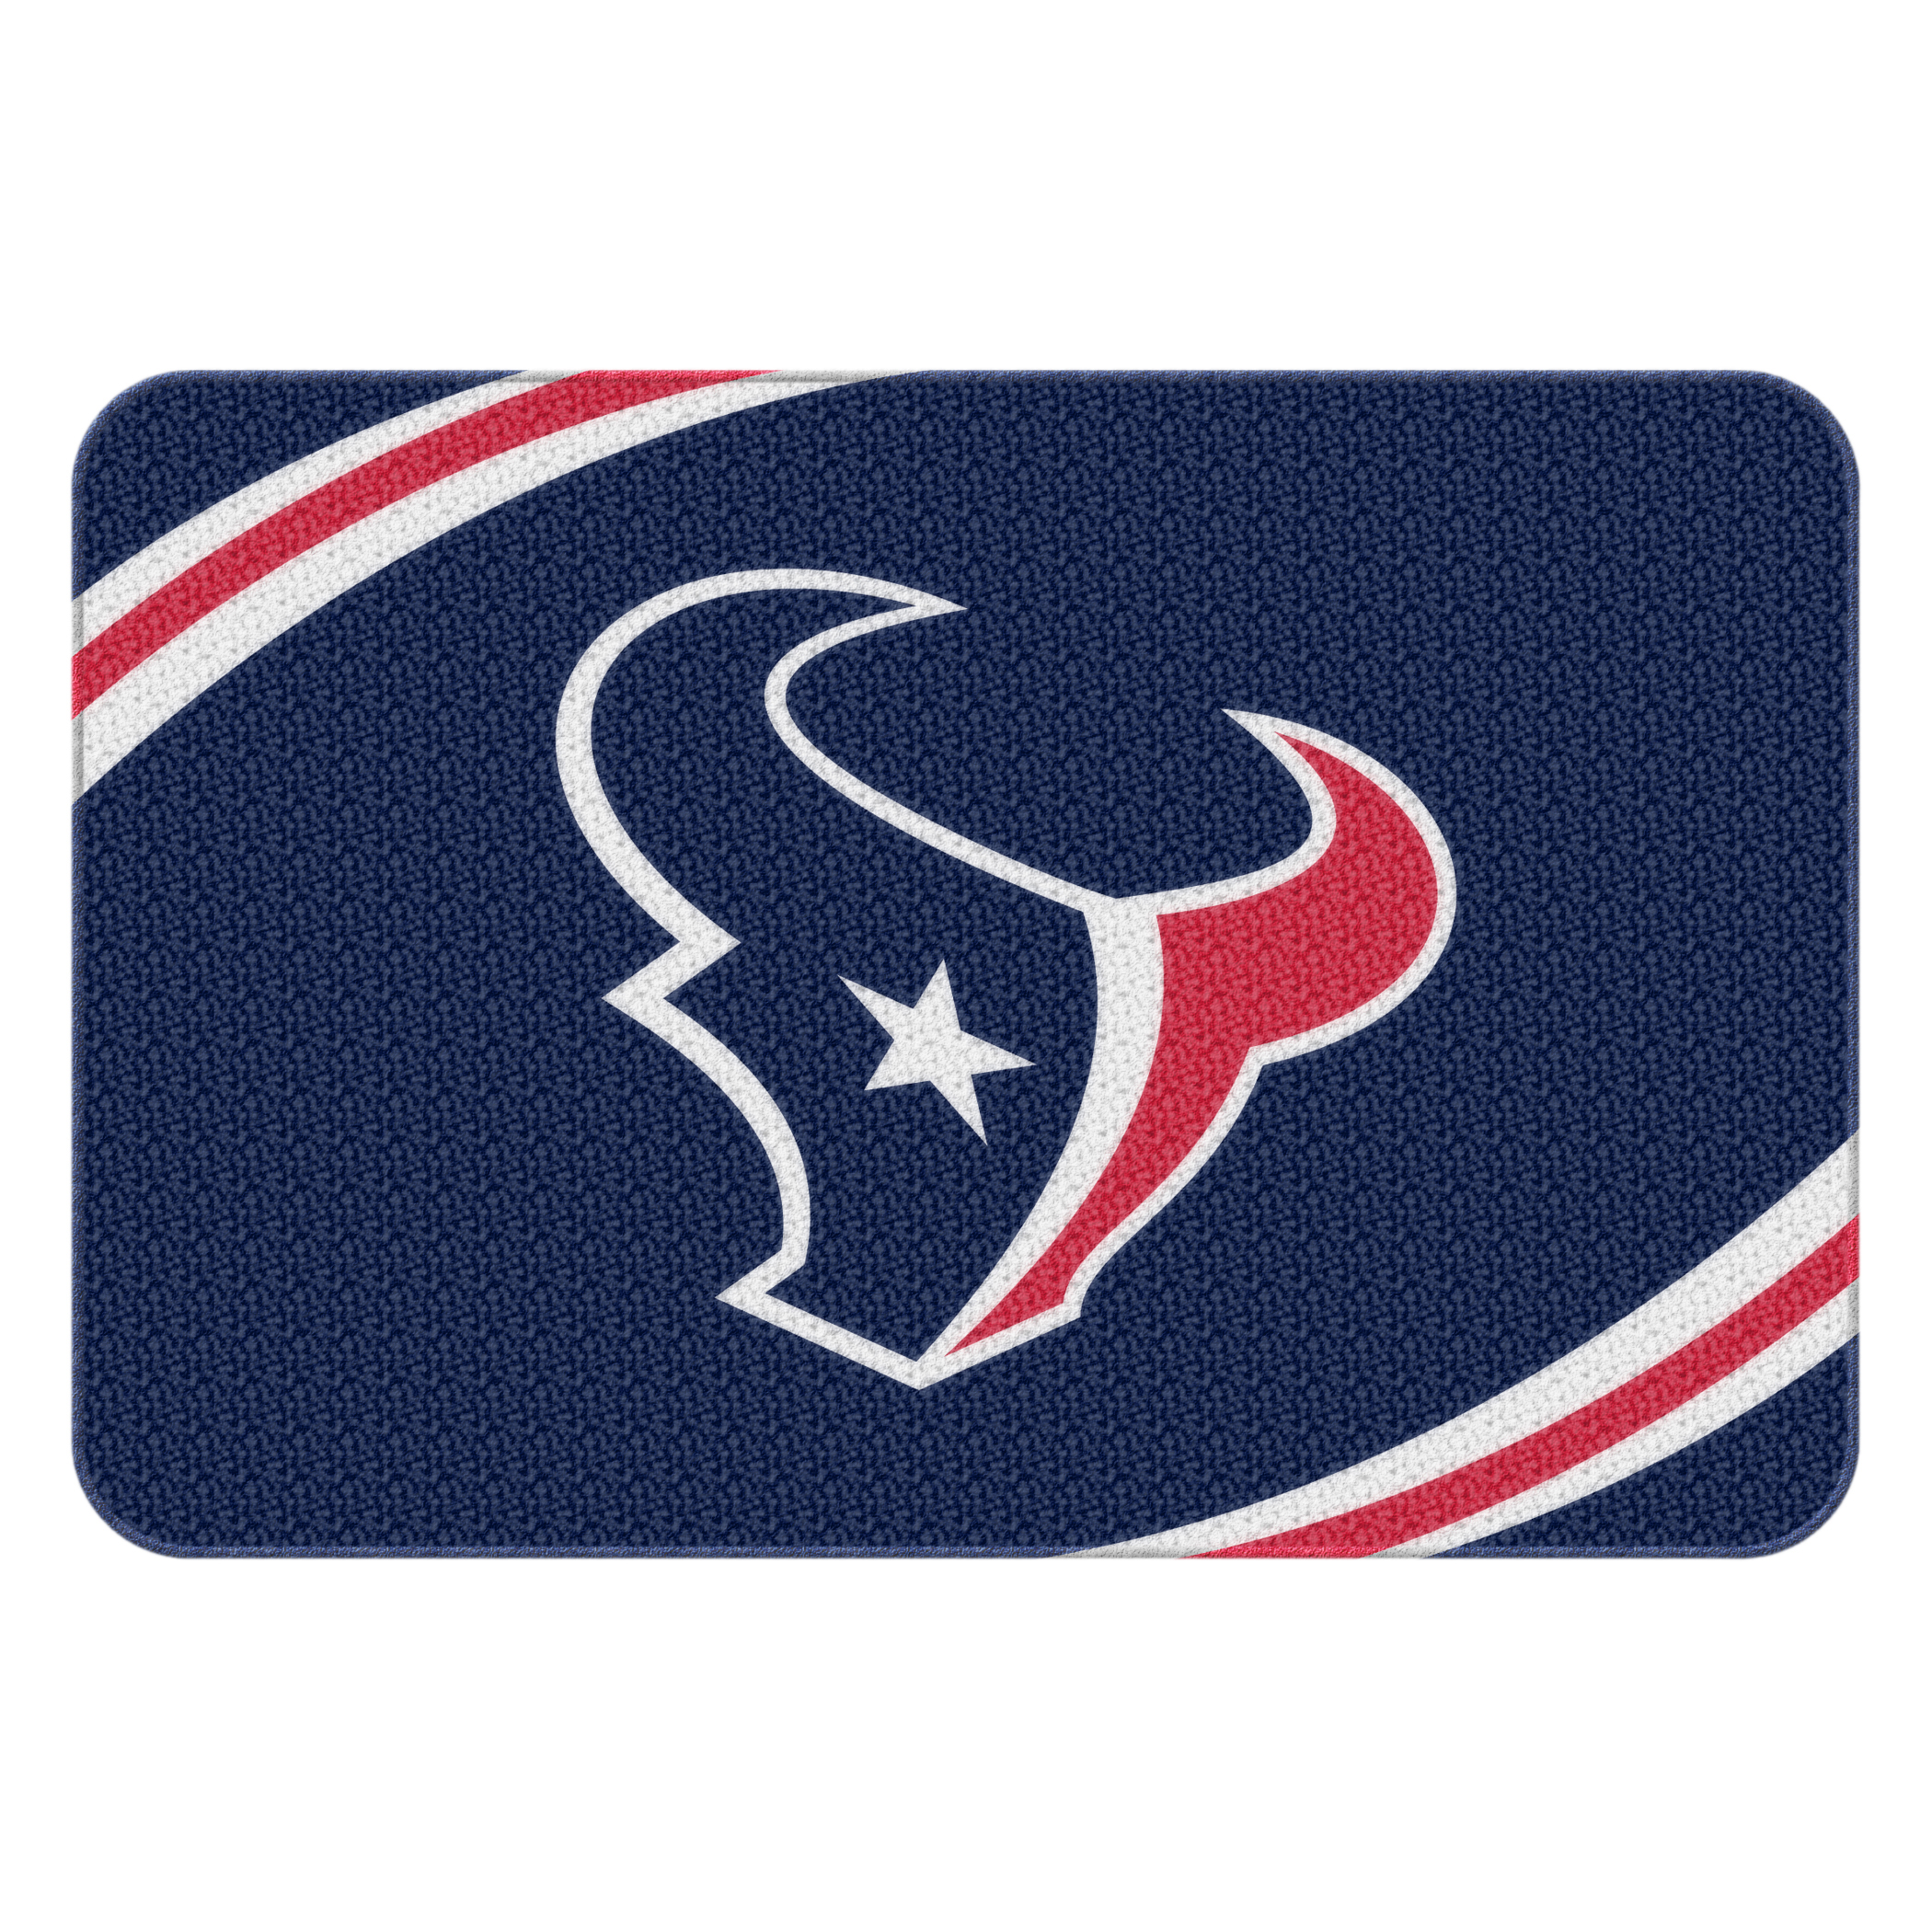 "NFL Houston Texans 20"" x 30"" Round Edge Bath Rug"